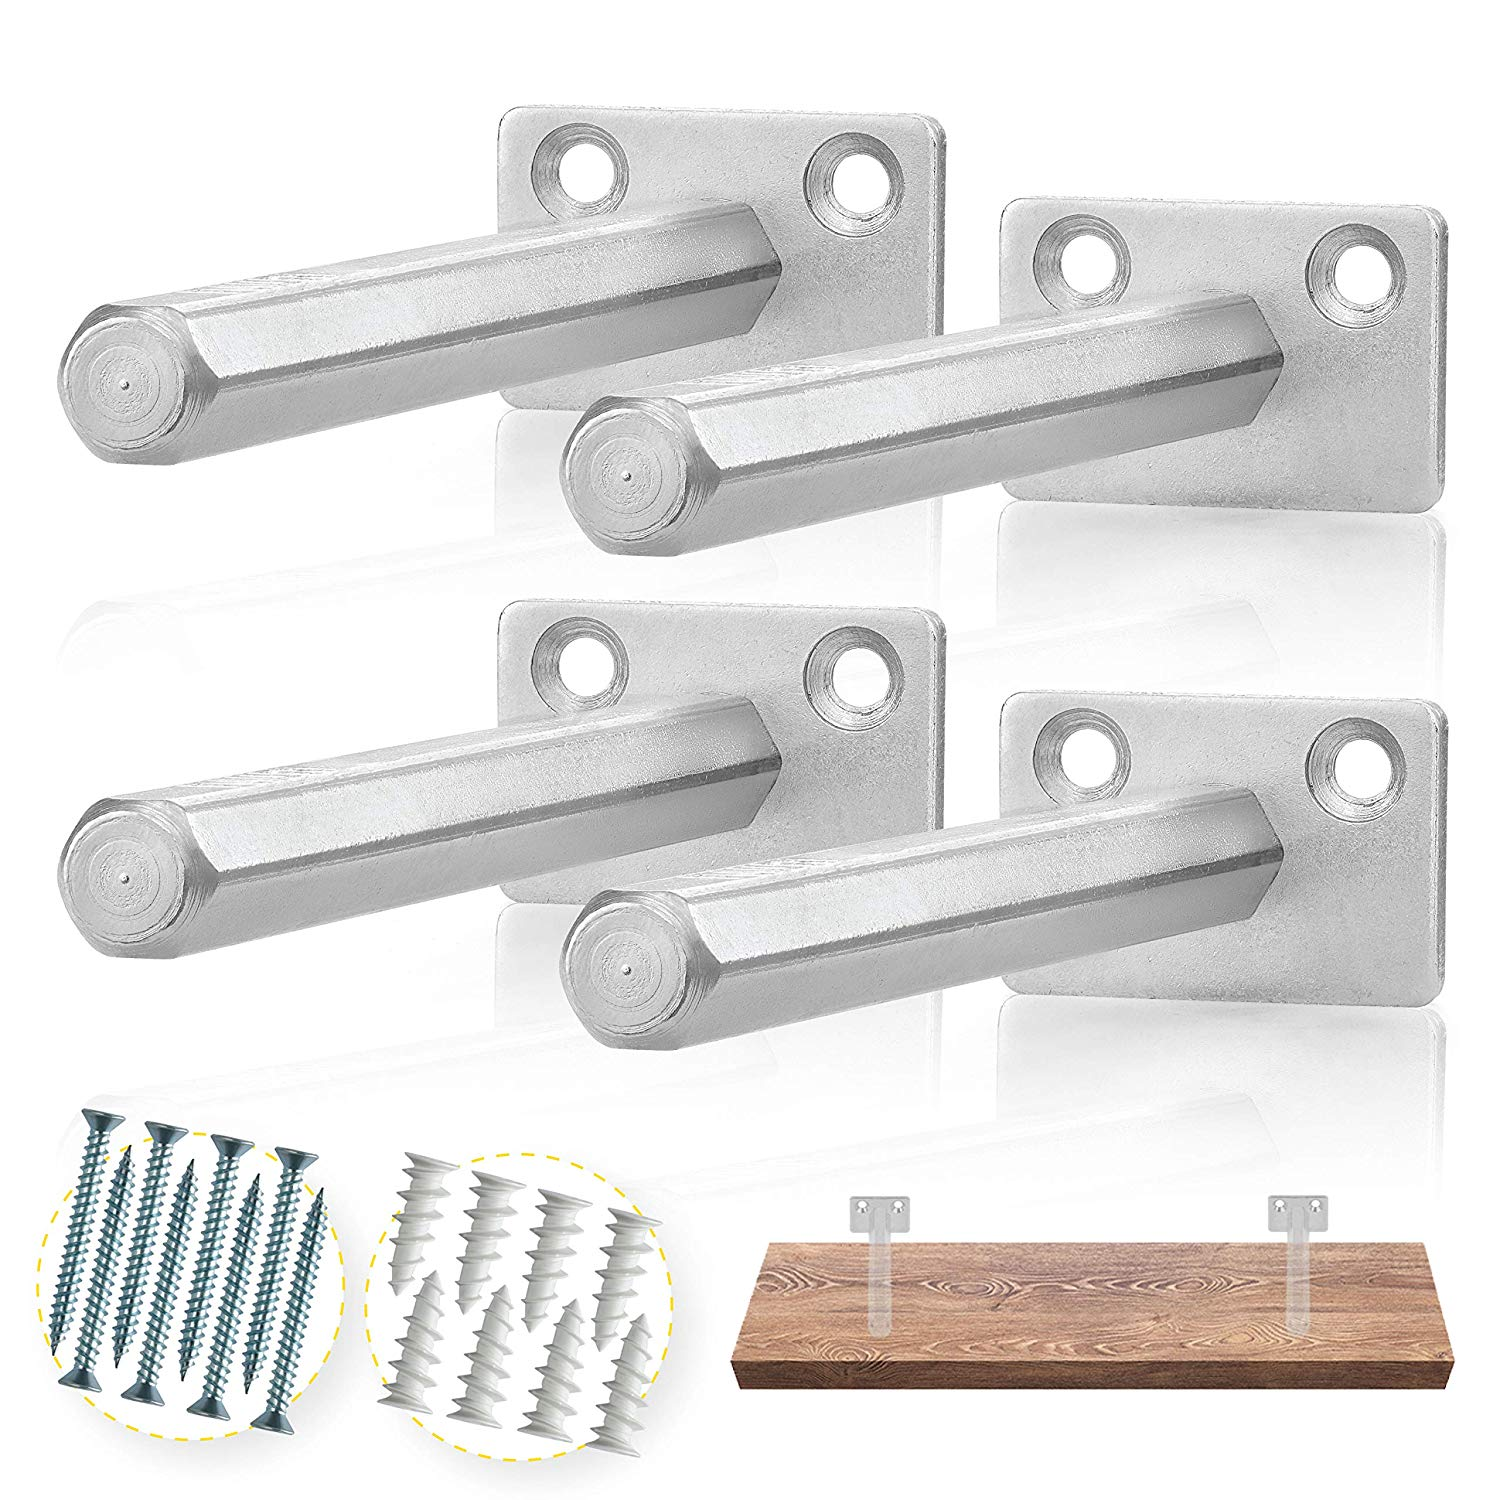 batoda floating shelf bracket pcs galvanized steel xuzl concealed hidden brackets blind supports for wood shelves support ikeas shelving unit hallway shoe rack open ideas ribba